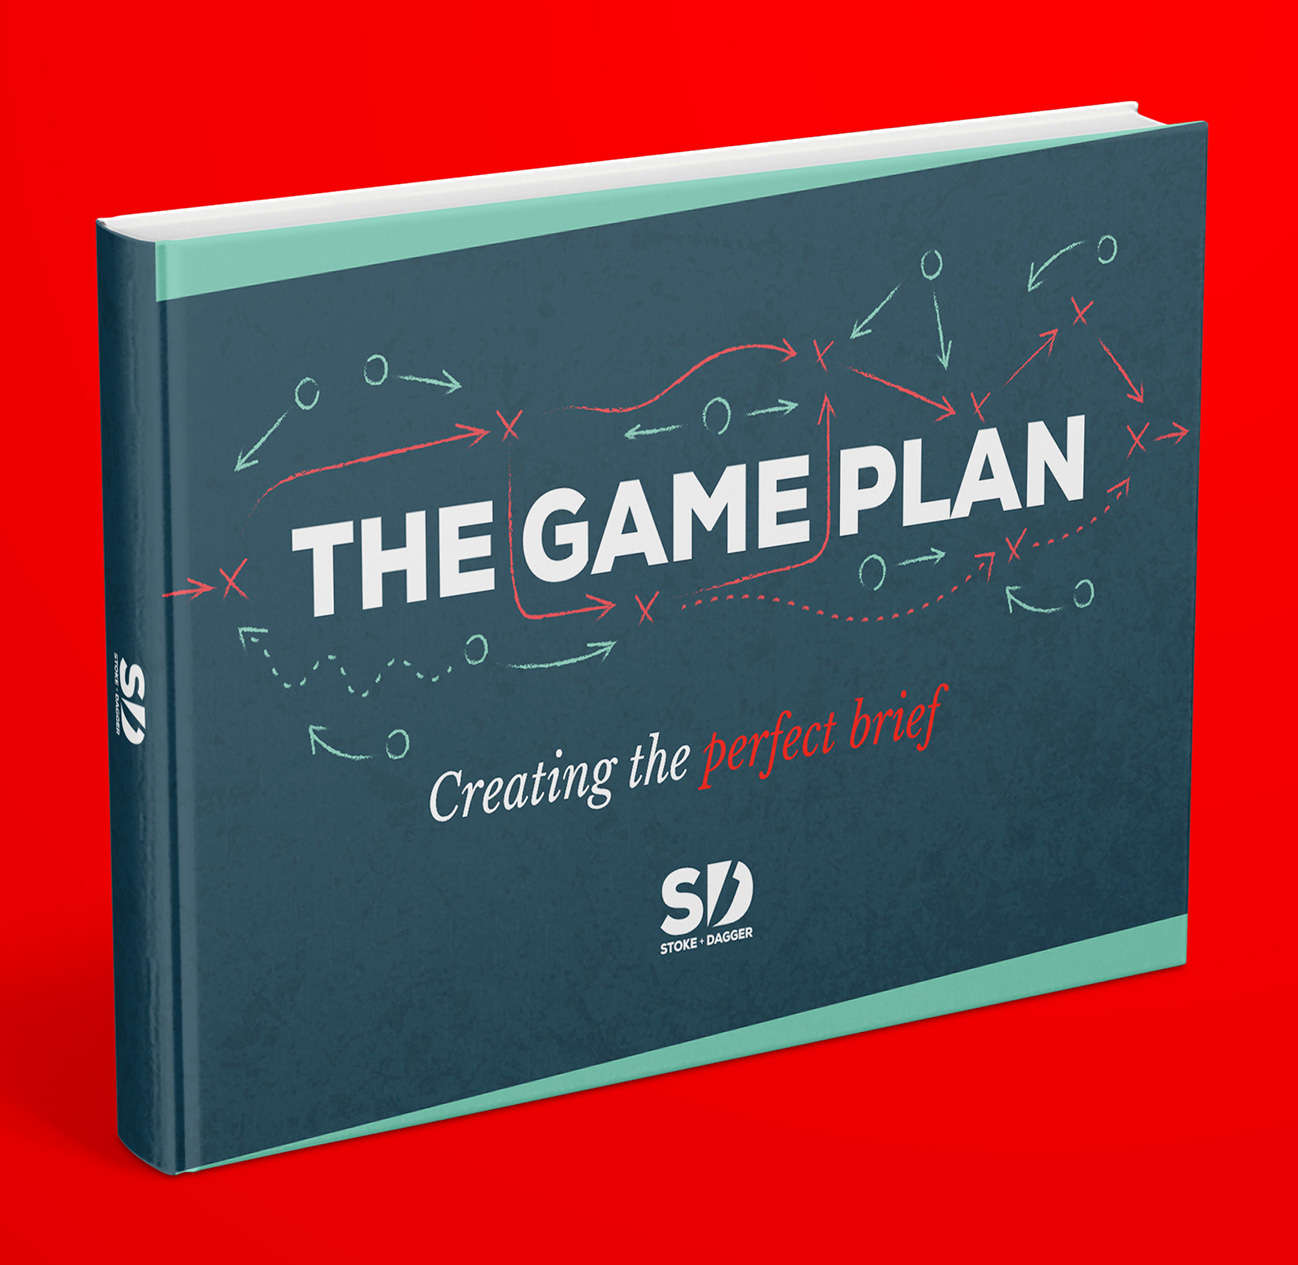 the game plan book